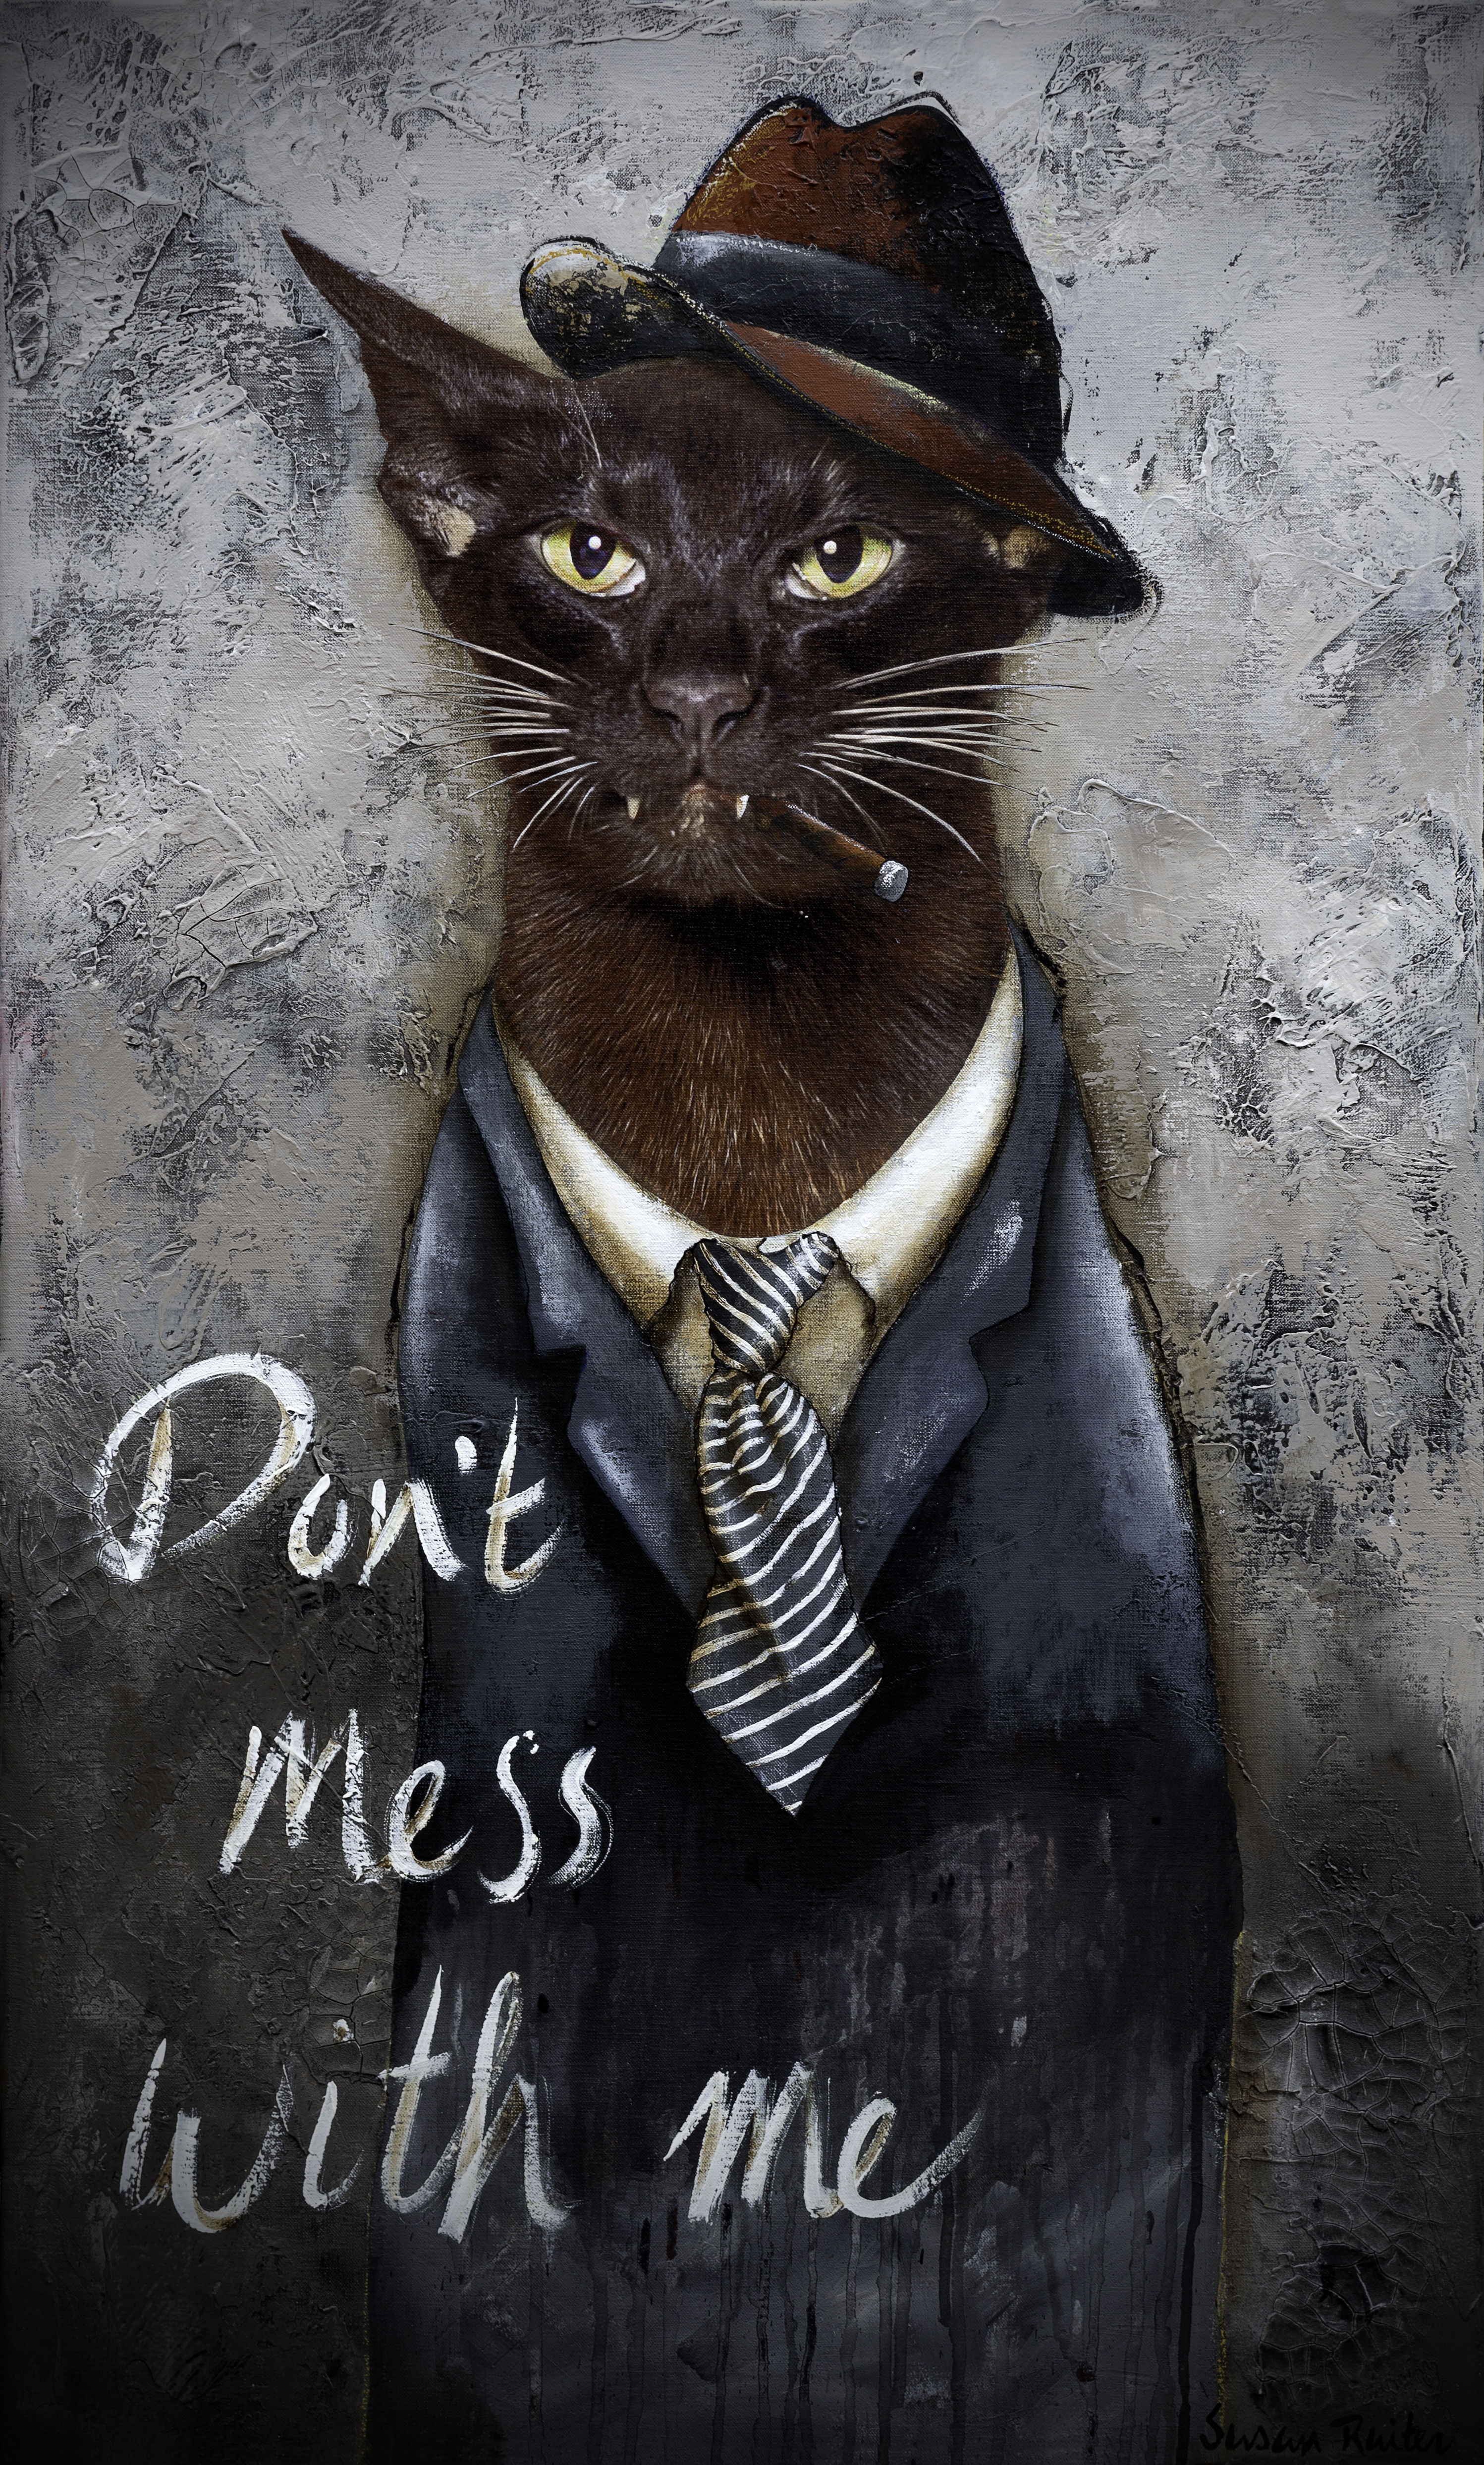 Uitgelezene Don't mess with me | Online Gallery KR-45